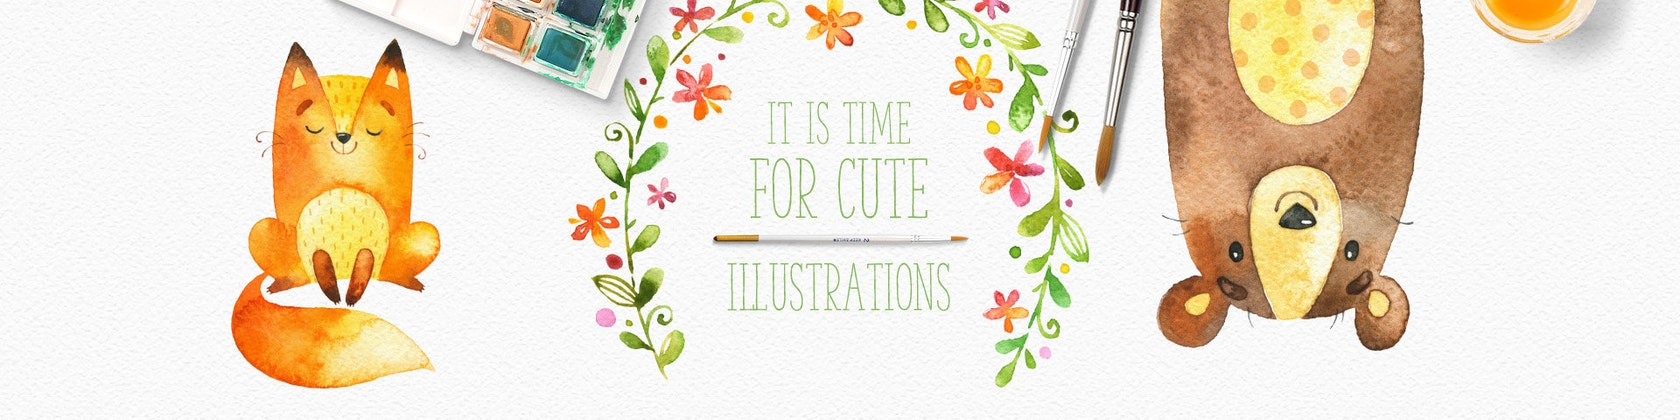 its time for cute illustrations welcome to our by